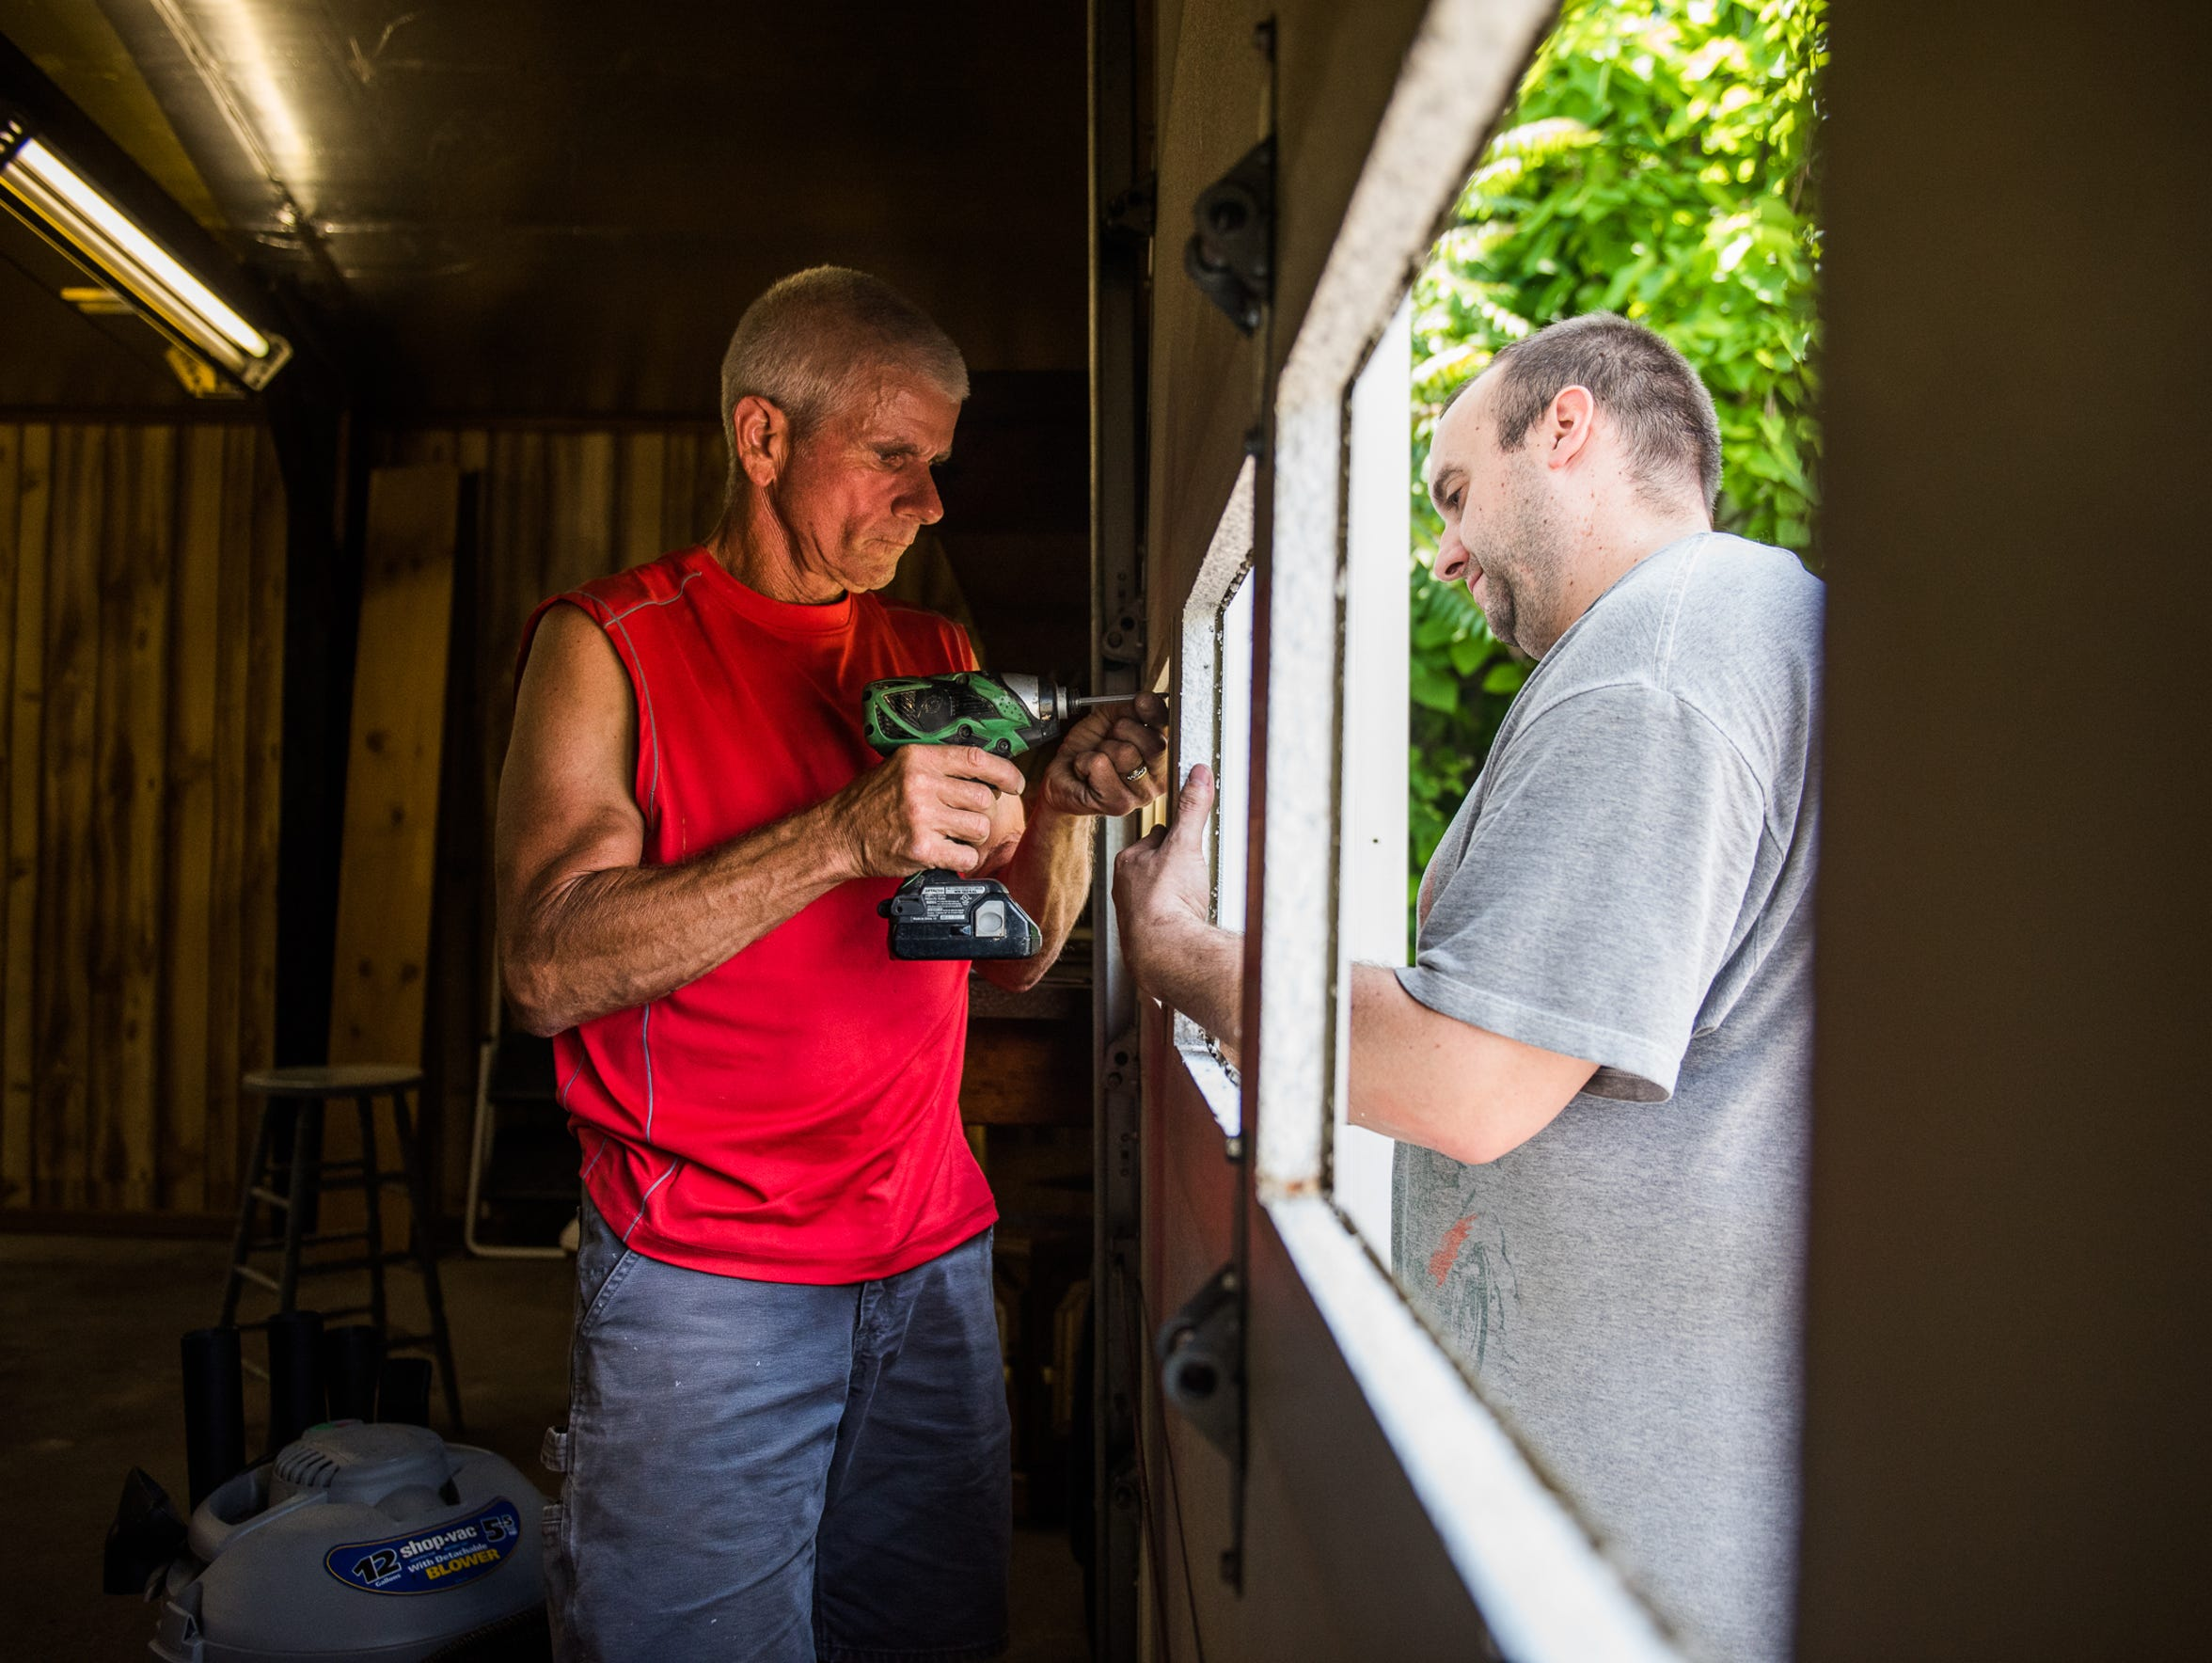 Jim Carbaugh, left, and Bryan Sharrow, right, work